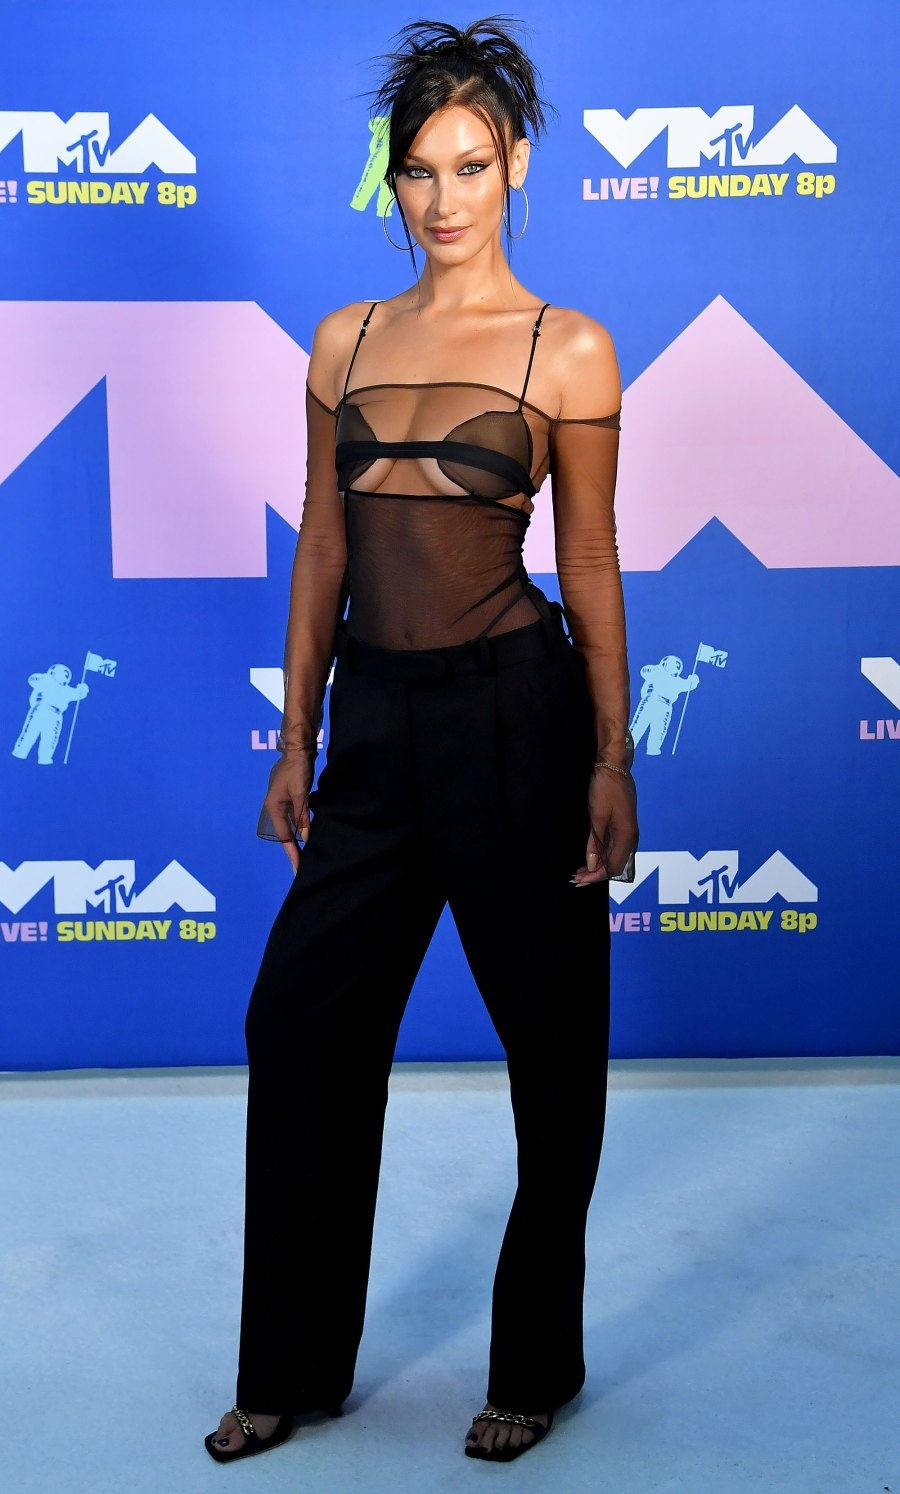 2020 MTV Video Music Awards Red Carpet Arrivals - Bella Hadid